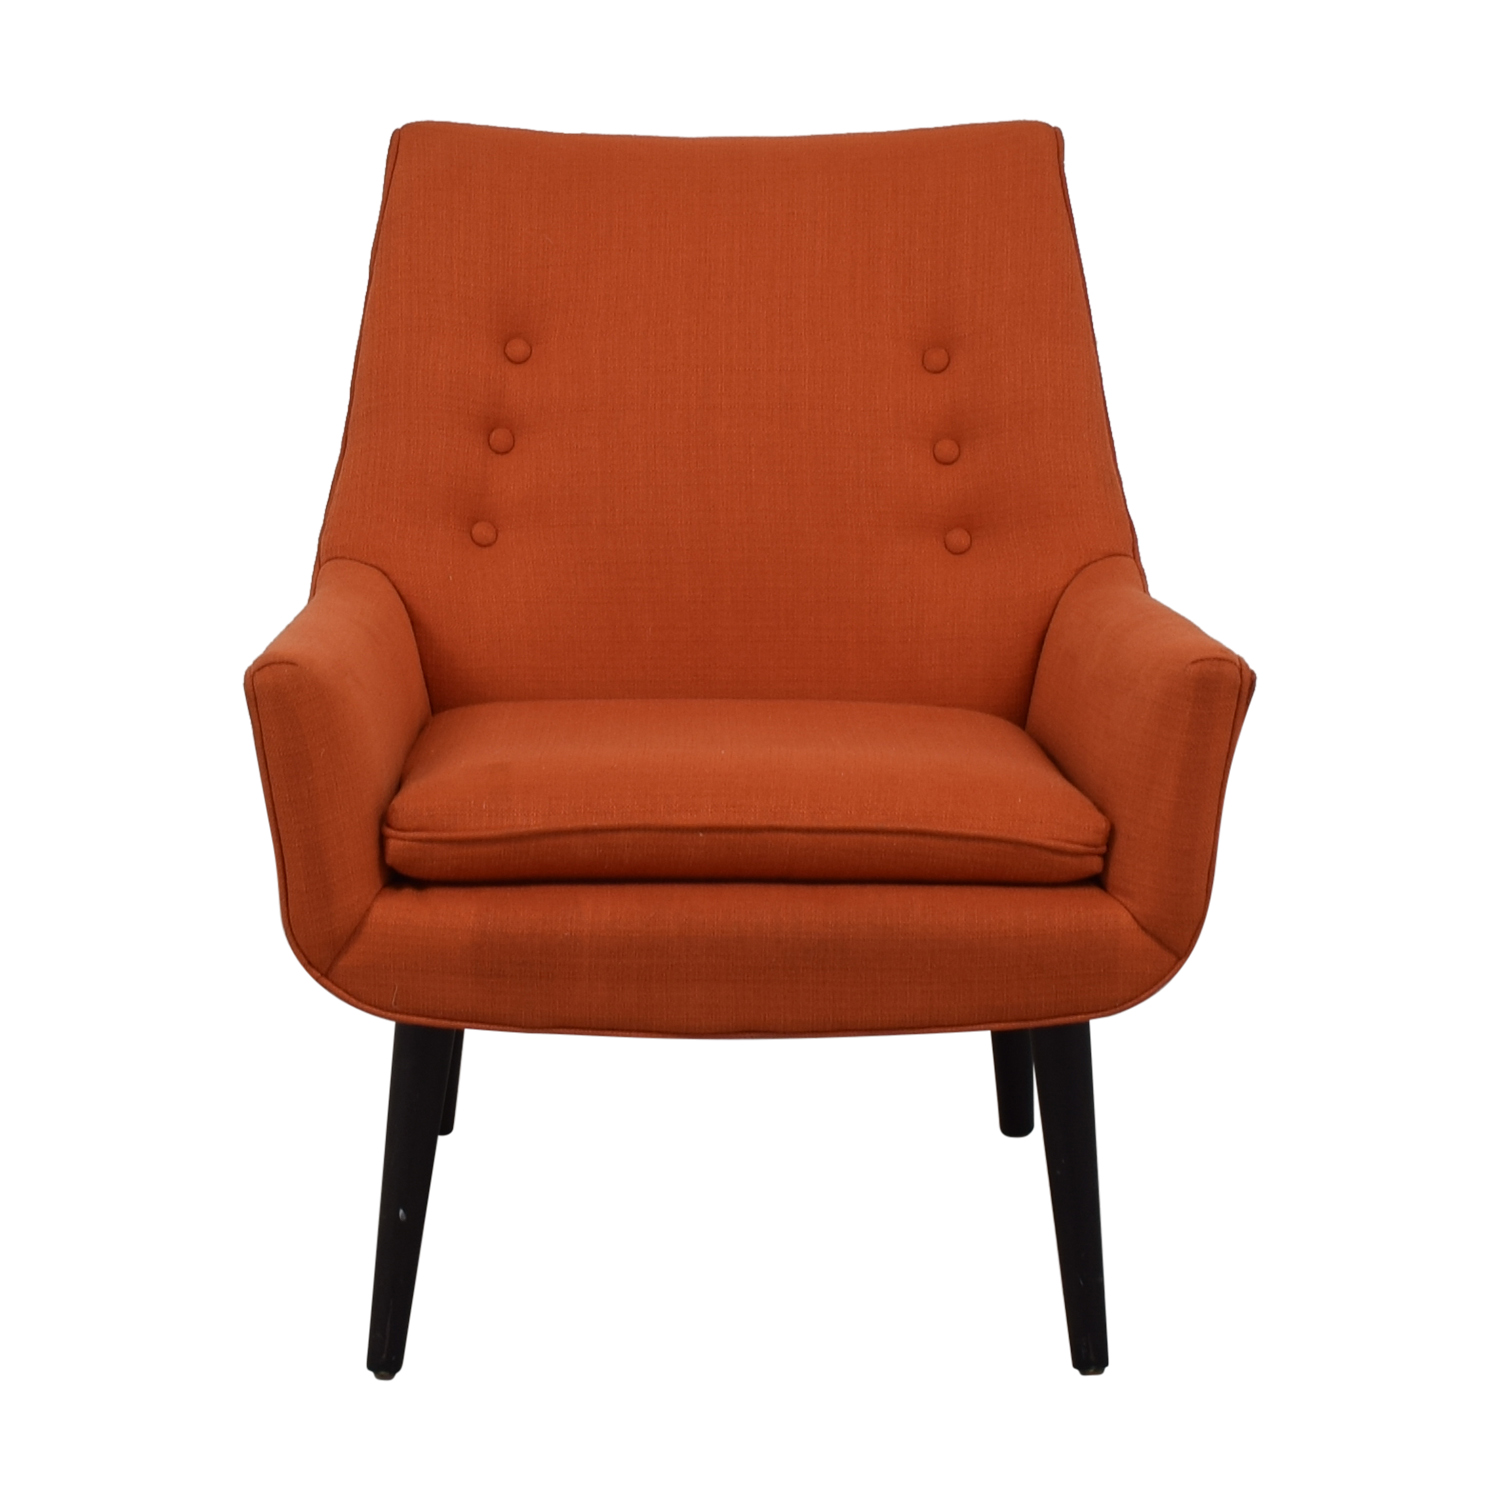 Johnathan Alder Mrs. Godfrey's Orange Accent Chair / Chairs